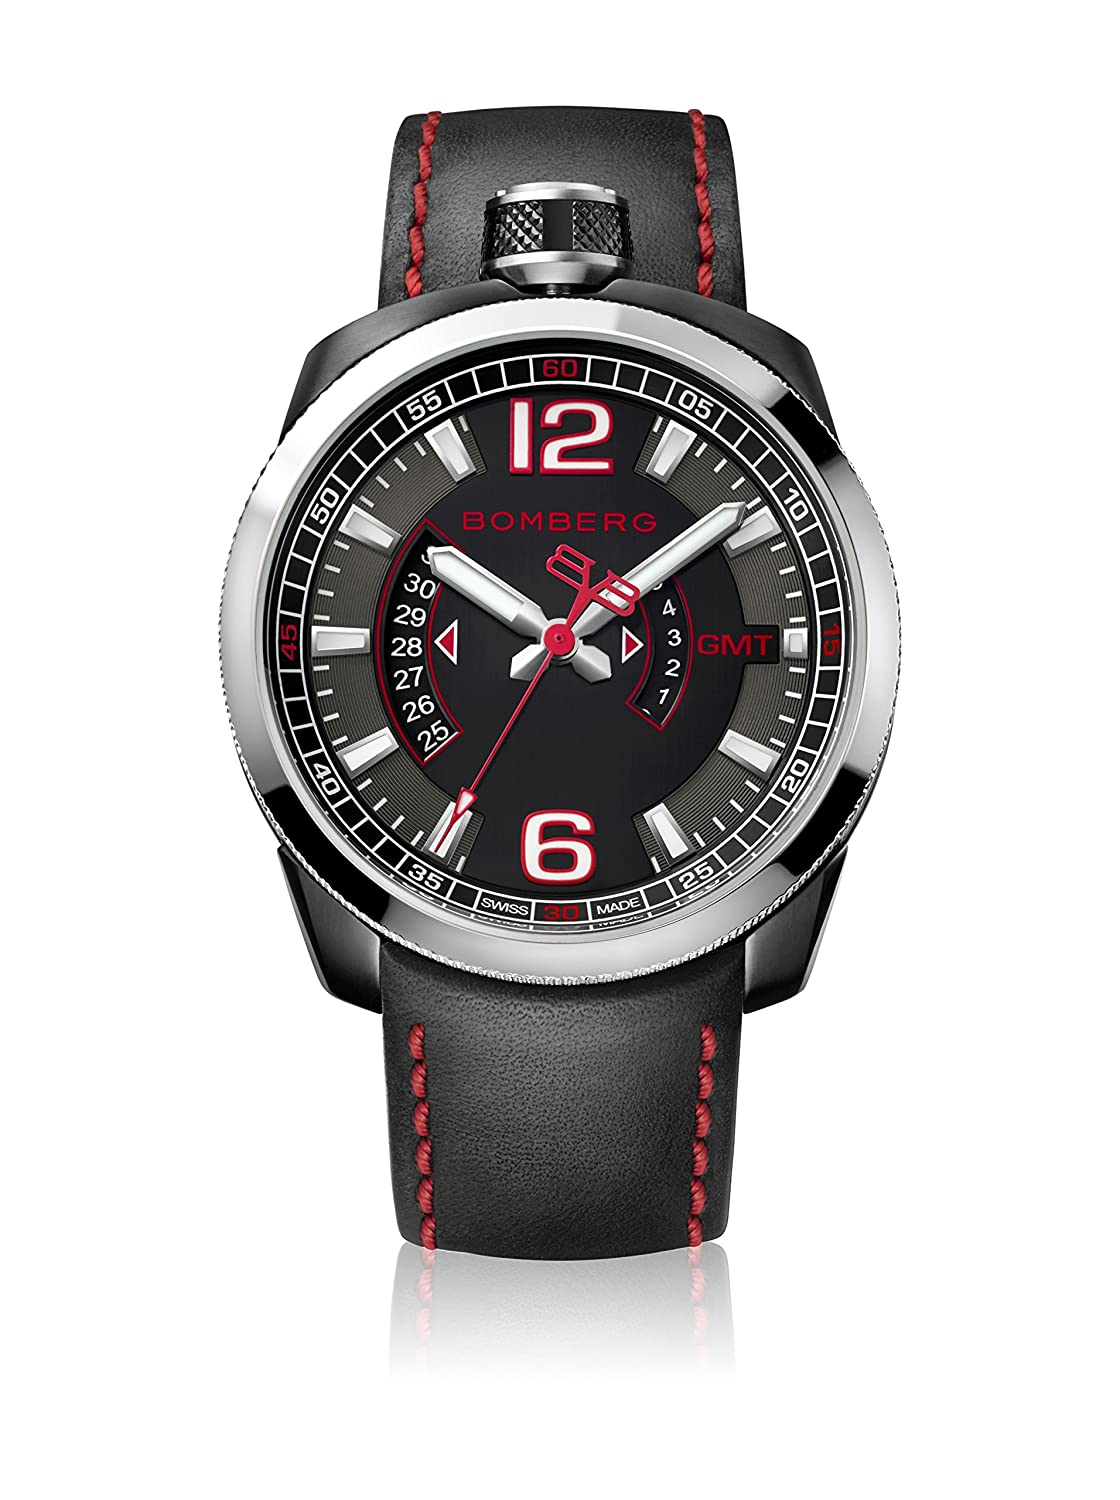 Bomberg BS45GMTSP.004.3 Bolt-68 collection Uhren - Swiss Made - 45 mm - Convertible taschenuhren